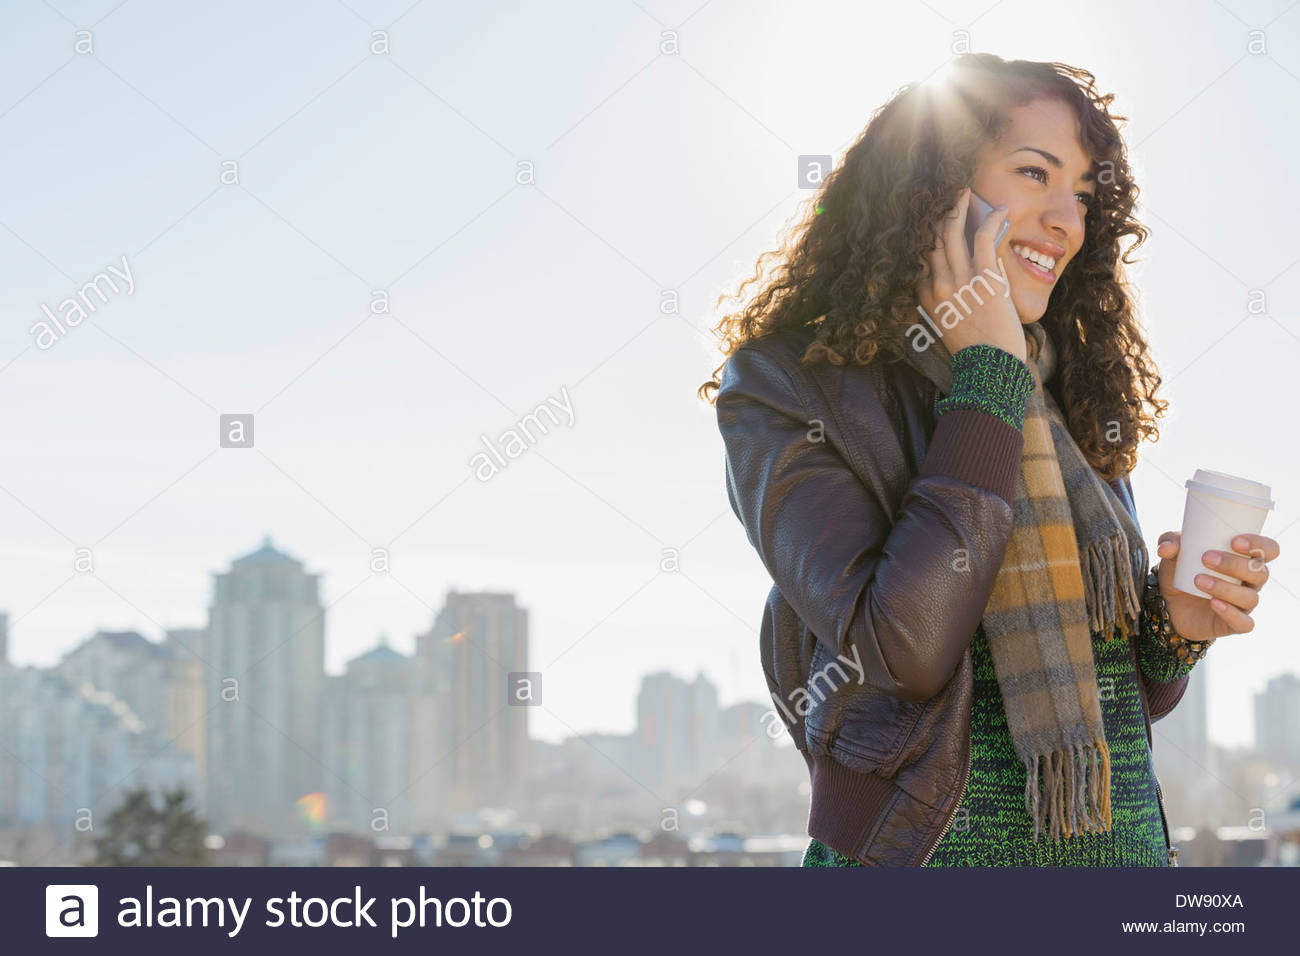 Smiling woman answering smart phone against cityscape - Stock Image